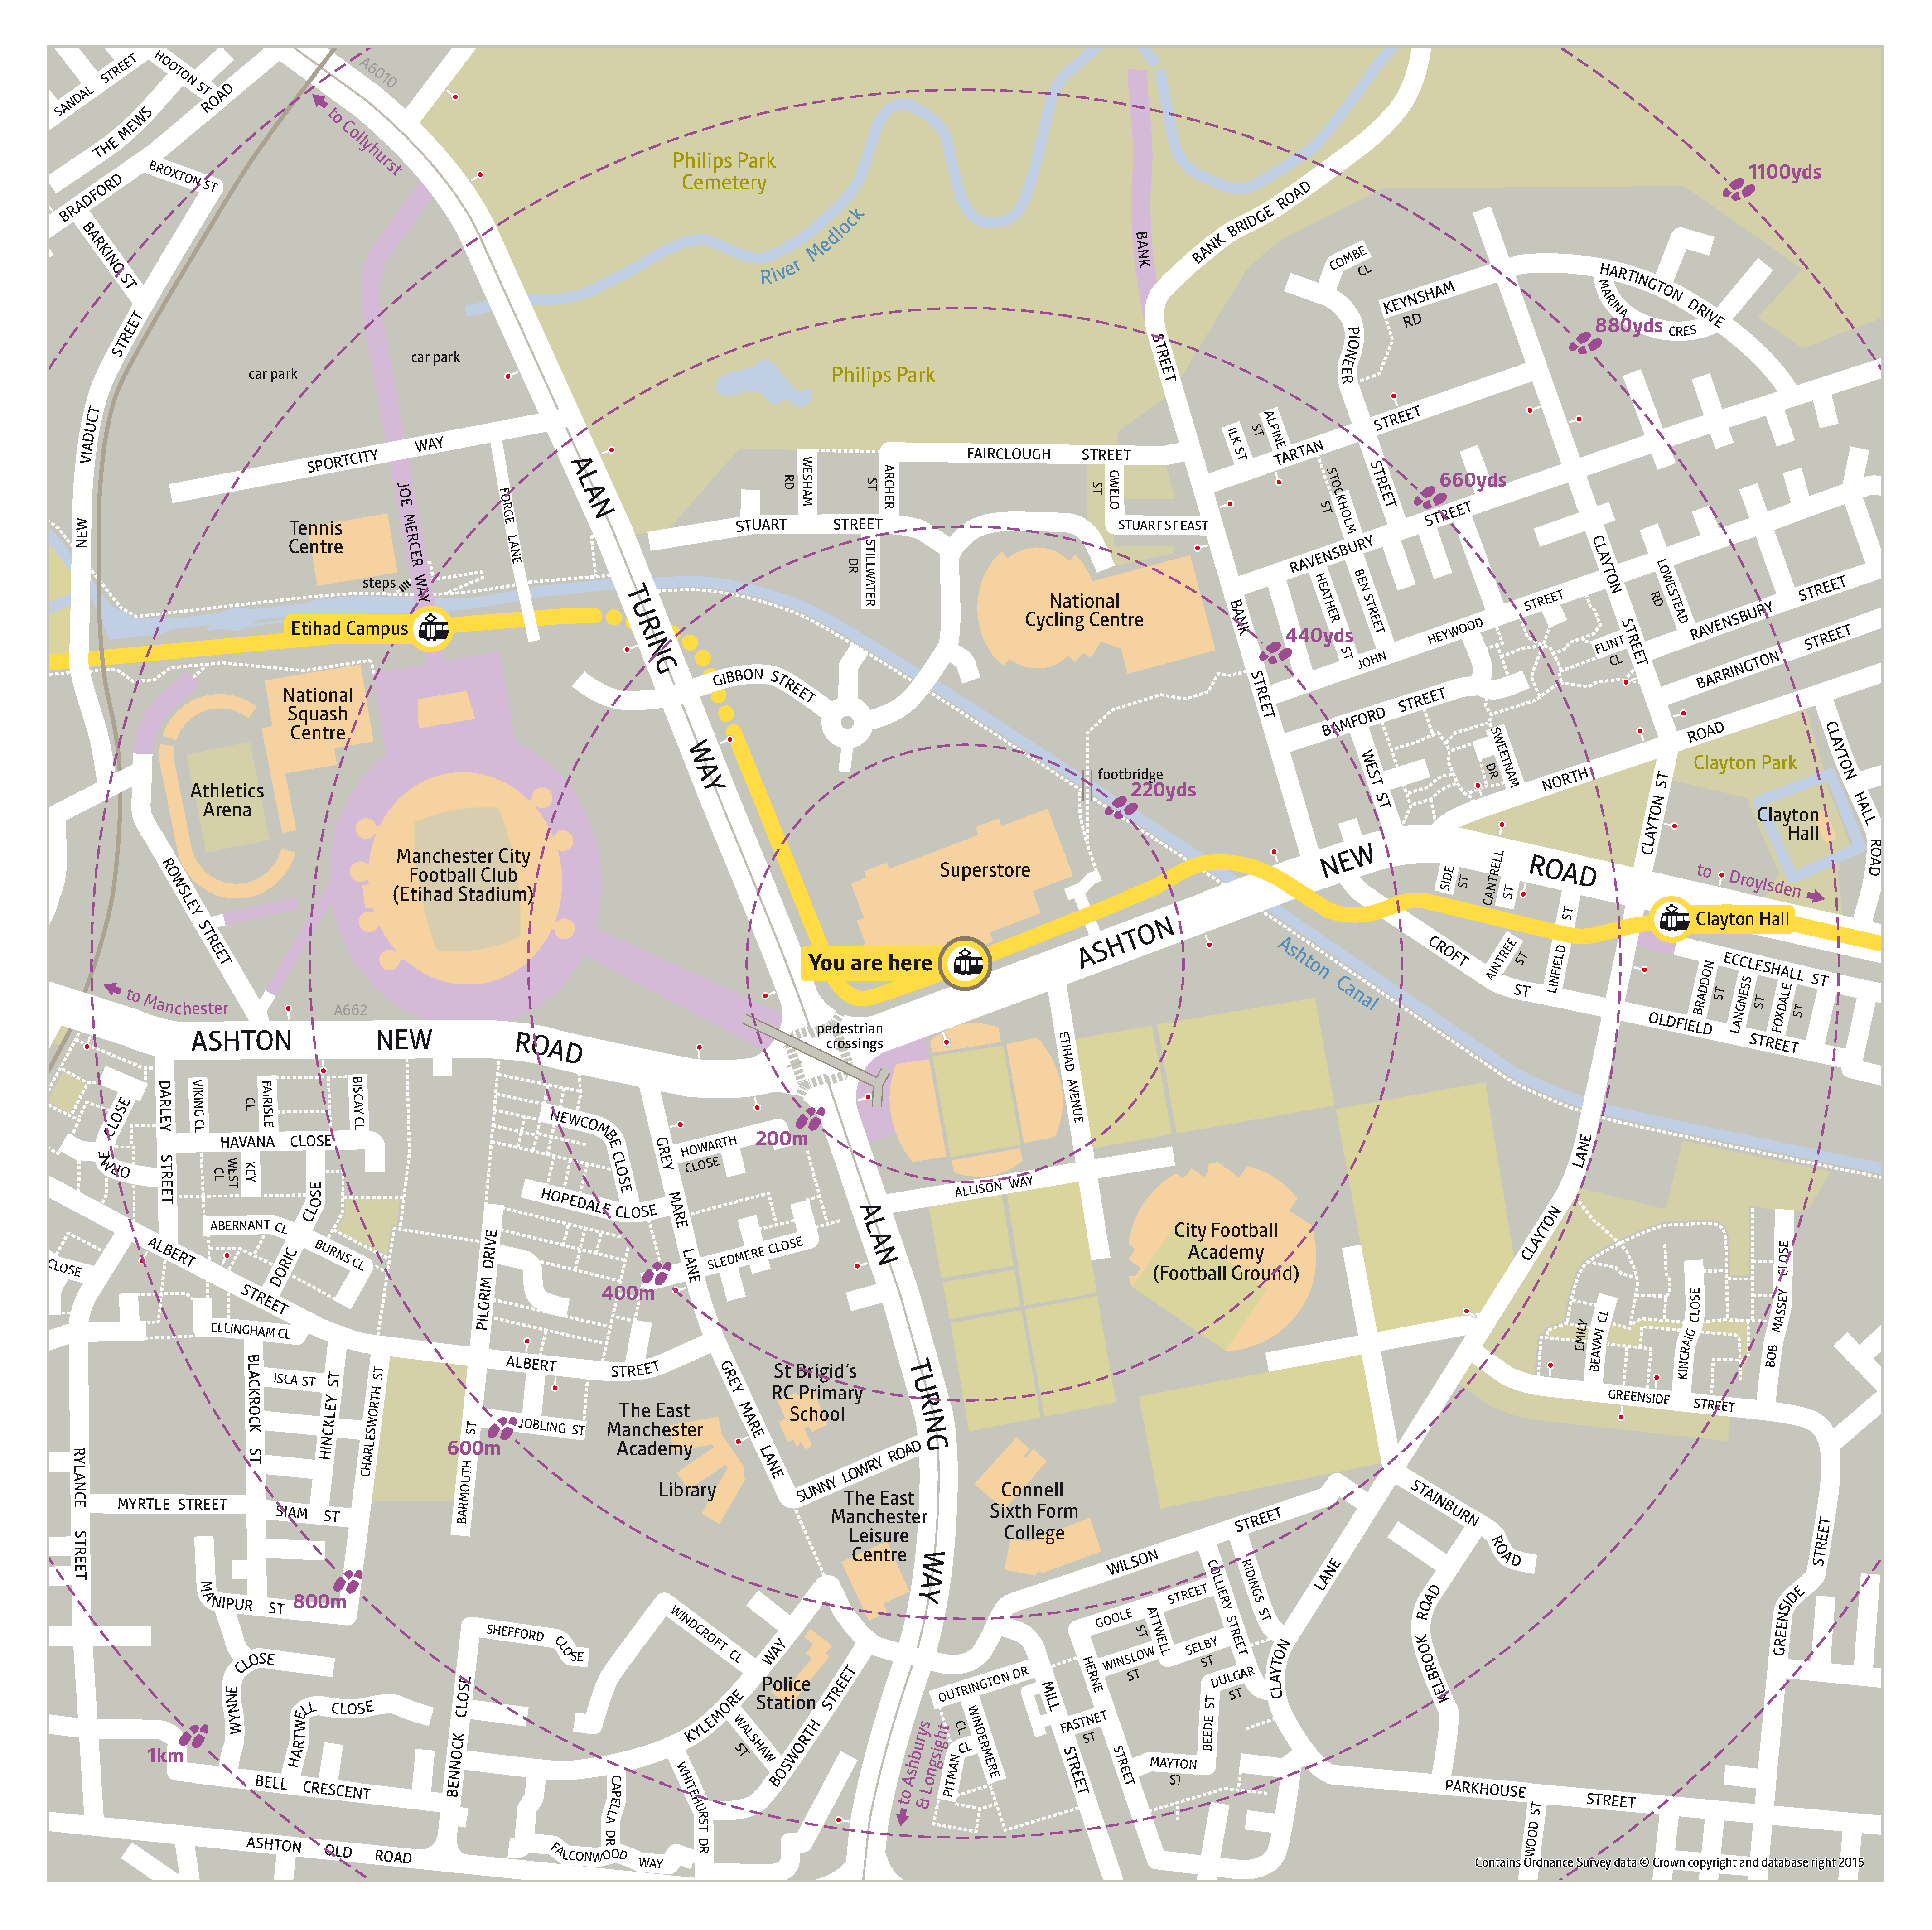 Local area map for Velopark tram stop